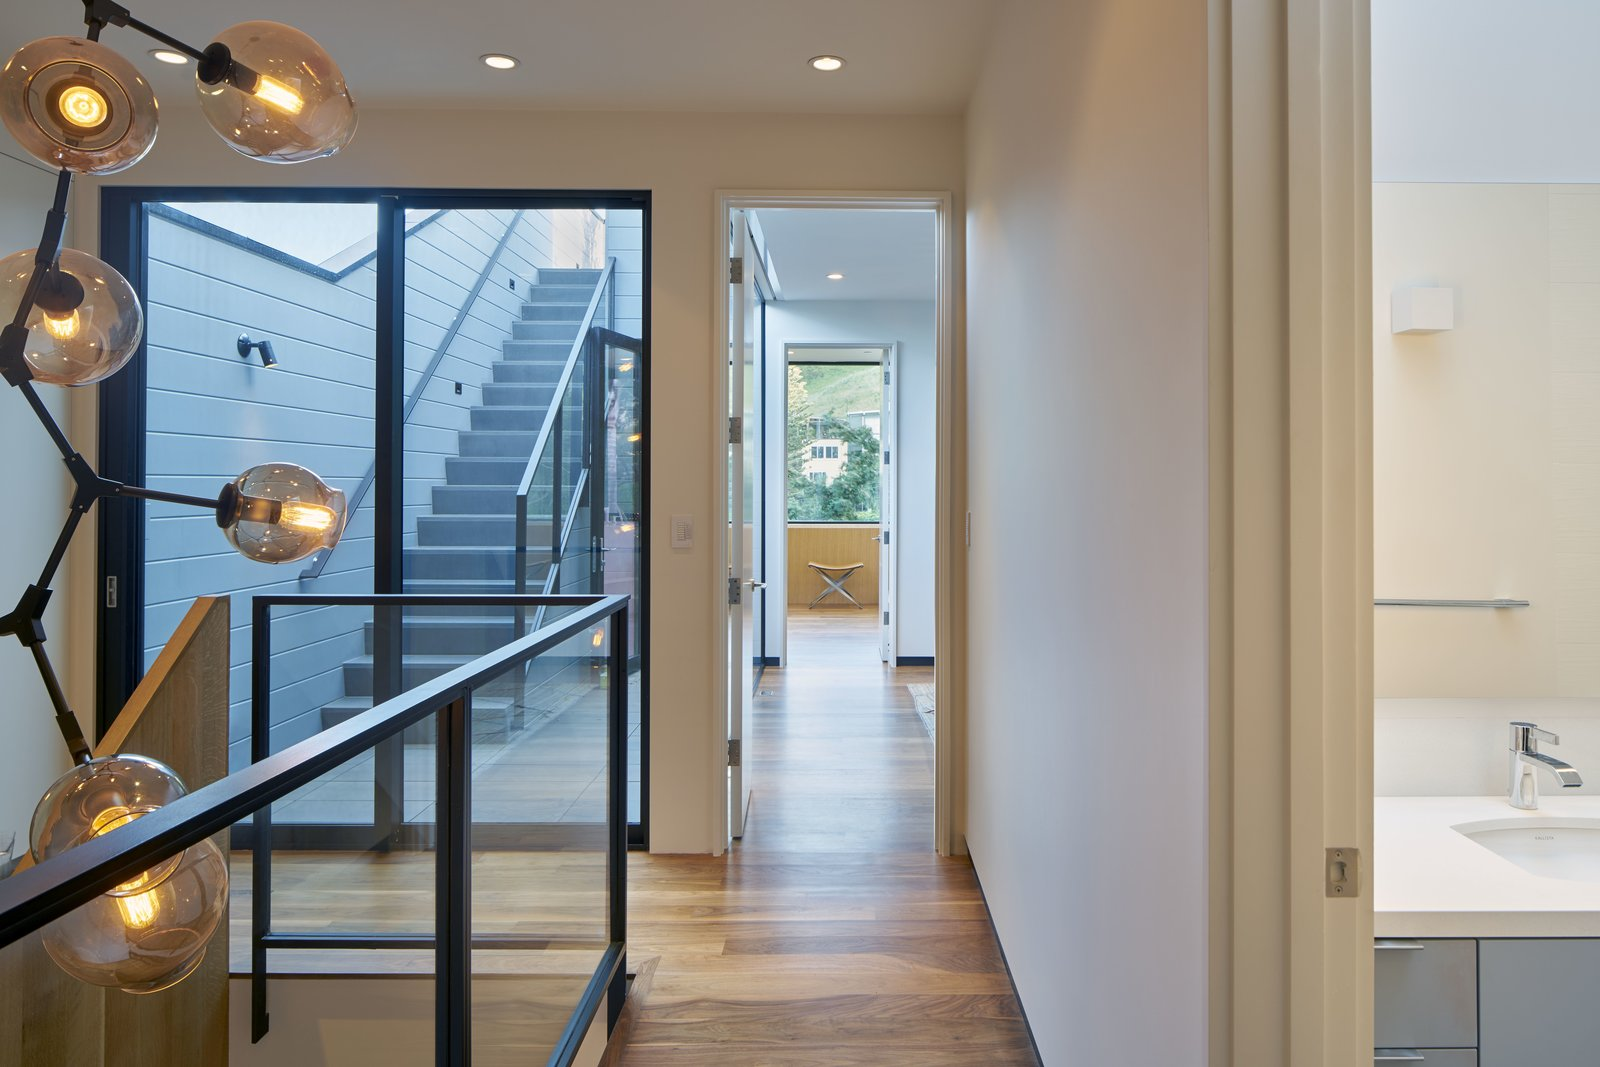 Hallway  29th Street Residence by Schwartz and Architecture